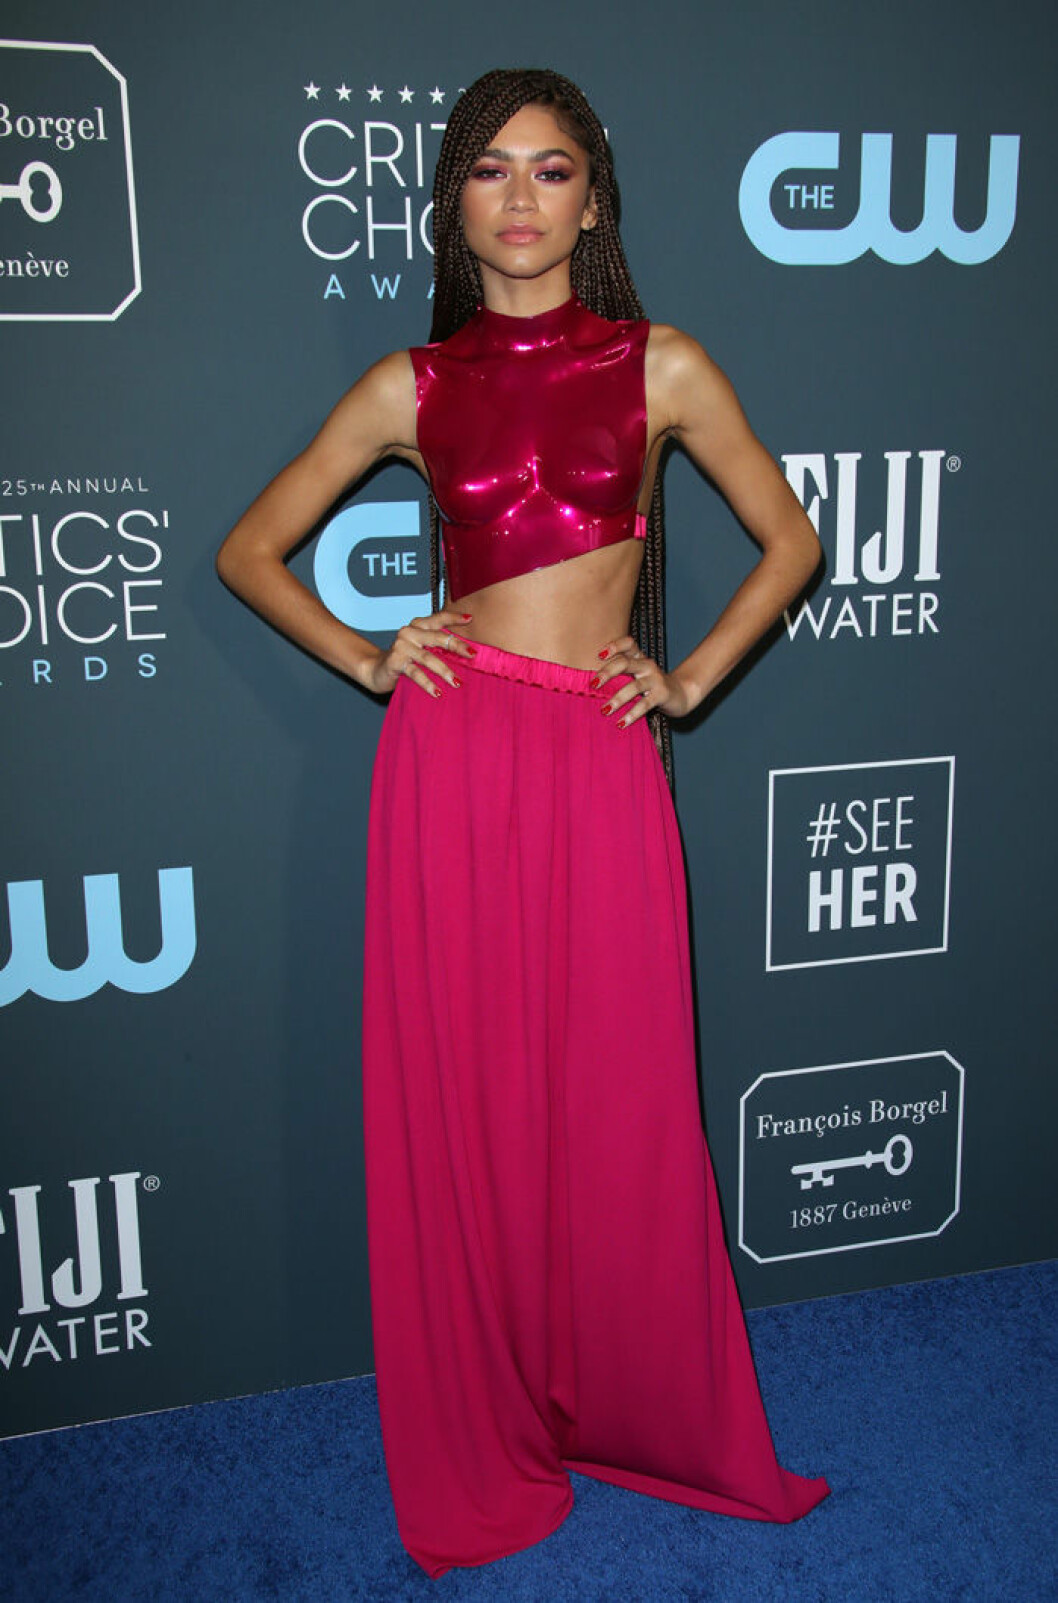 En bild på skådespelerskan Zendaya på Critics' Choice Awards 2020.